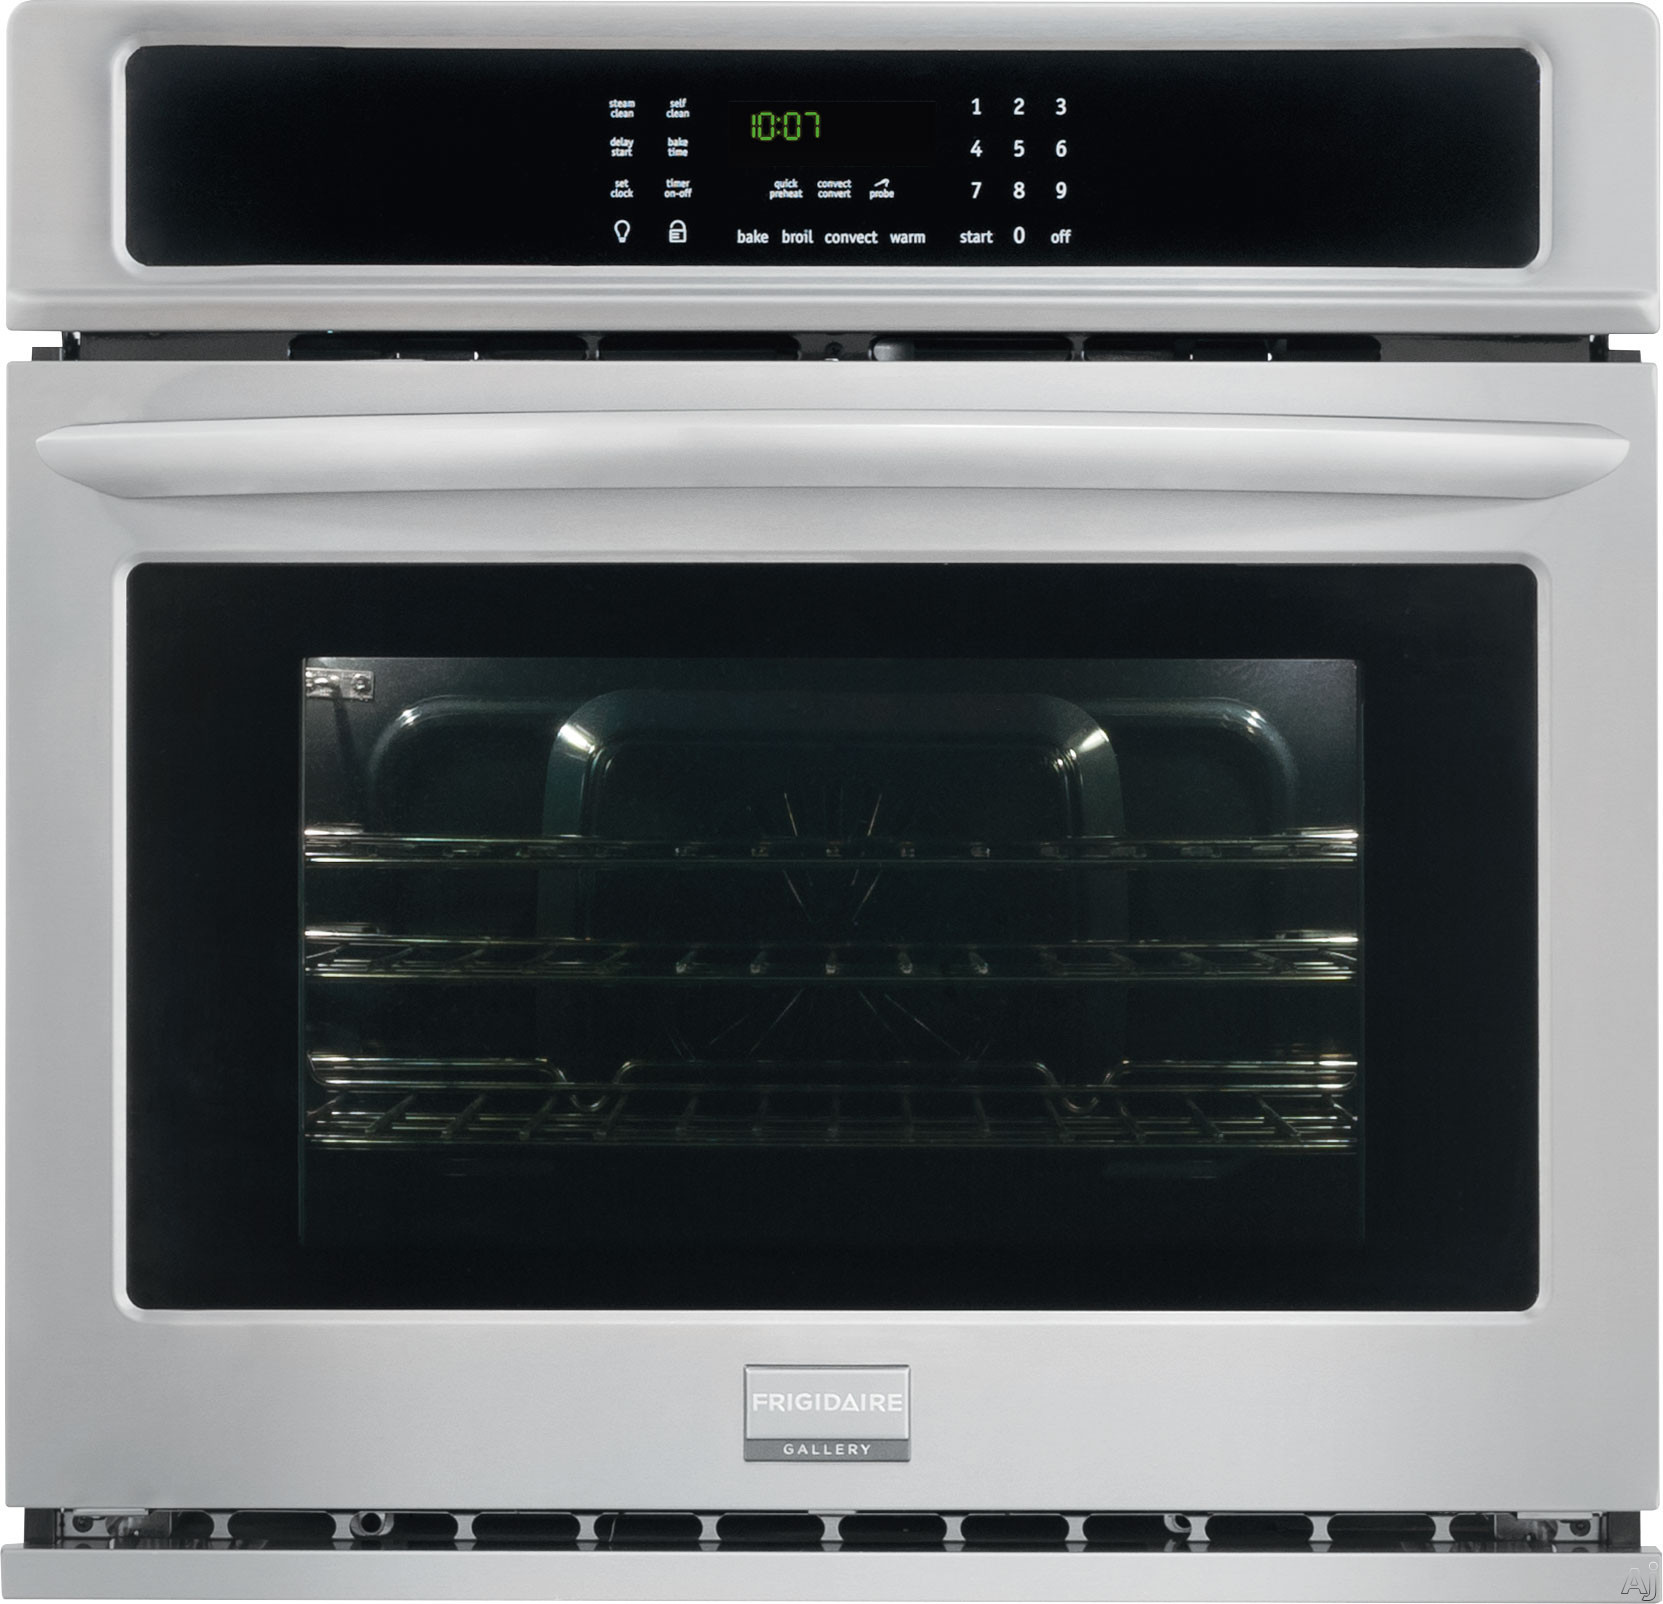 "Frigidaire Gallery Series FGEW3065PF 30 Inch Single Electric Wall Oven with True Convection, Quick Preheat, Effortlessâ""¢ Convection, Delay Start, One-Touch Keep Warm, Auto Shut-Off, Temperature P"